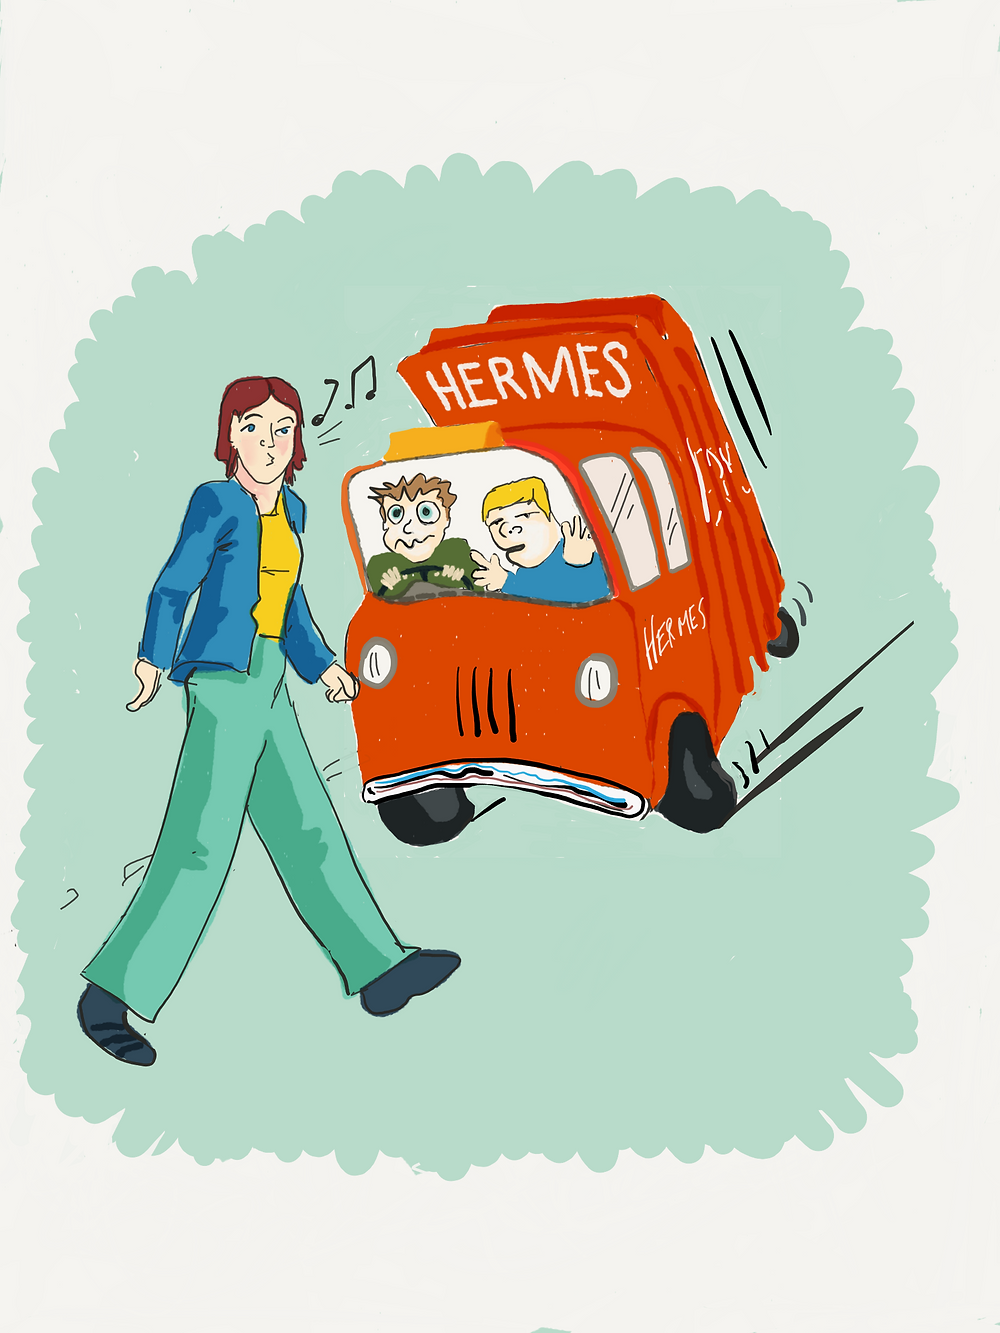 Woman whistling walks unaware in front of a Hermes delivery van.